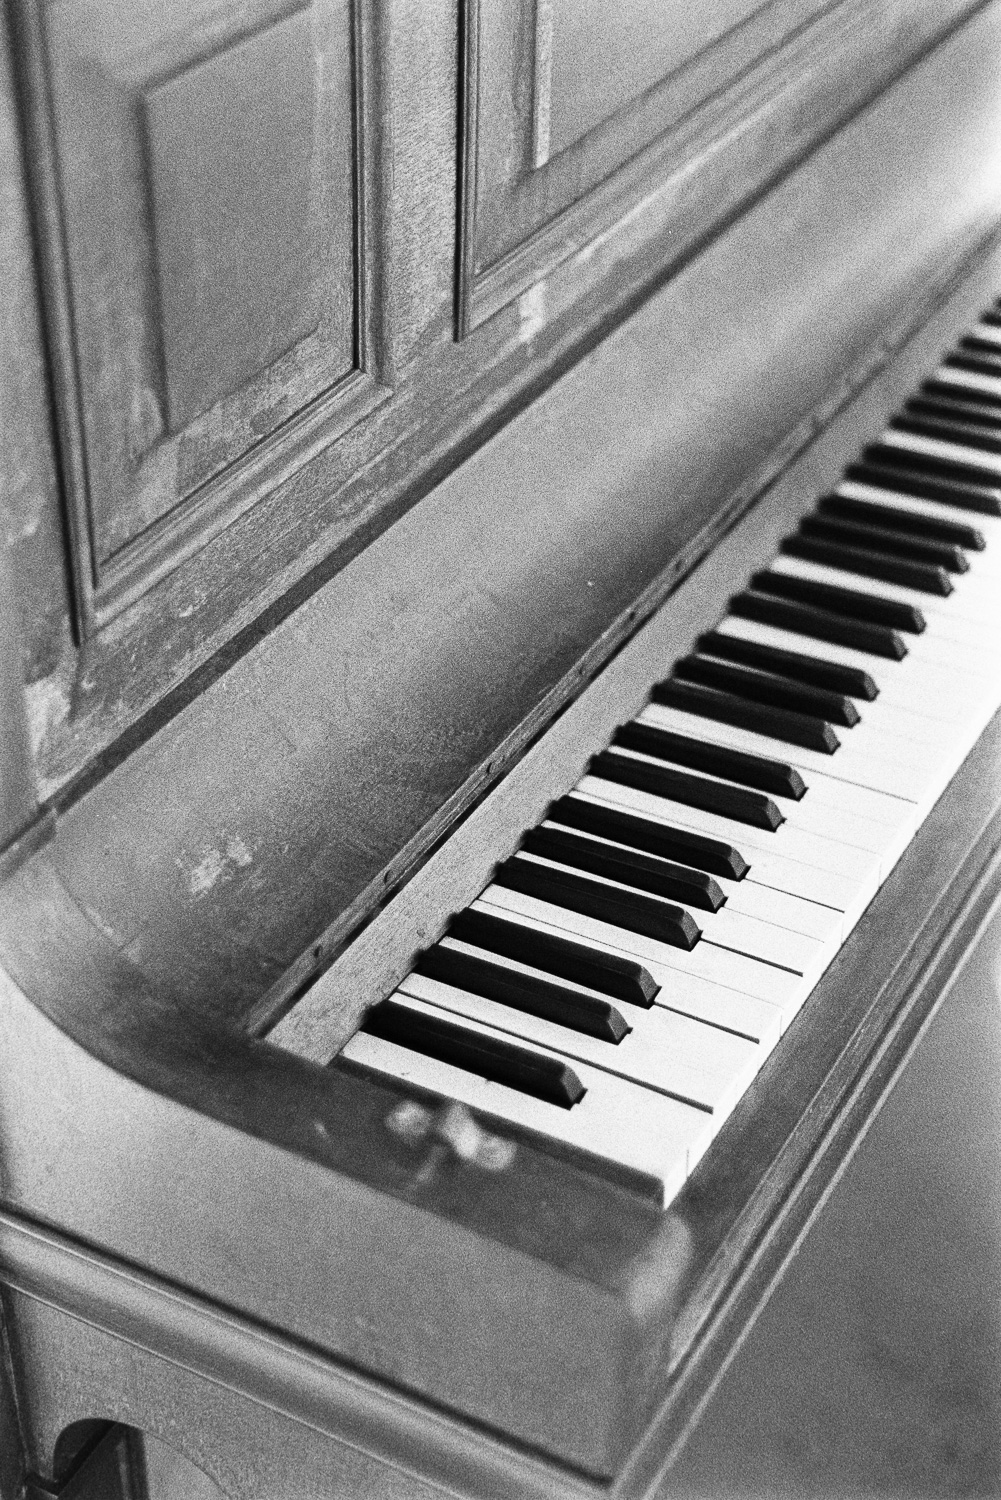 That West End piano.